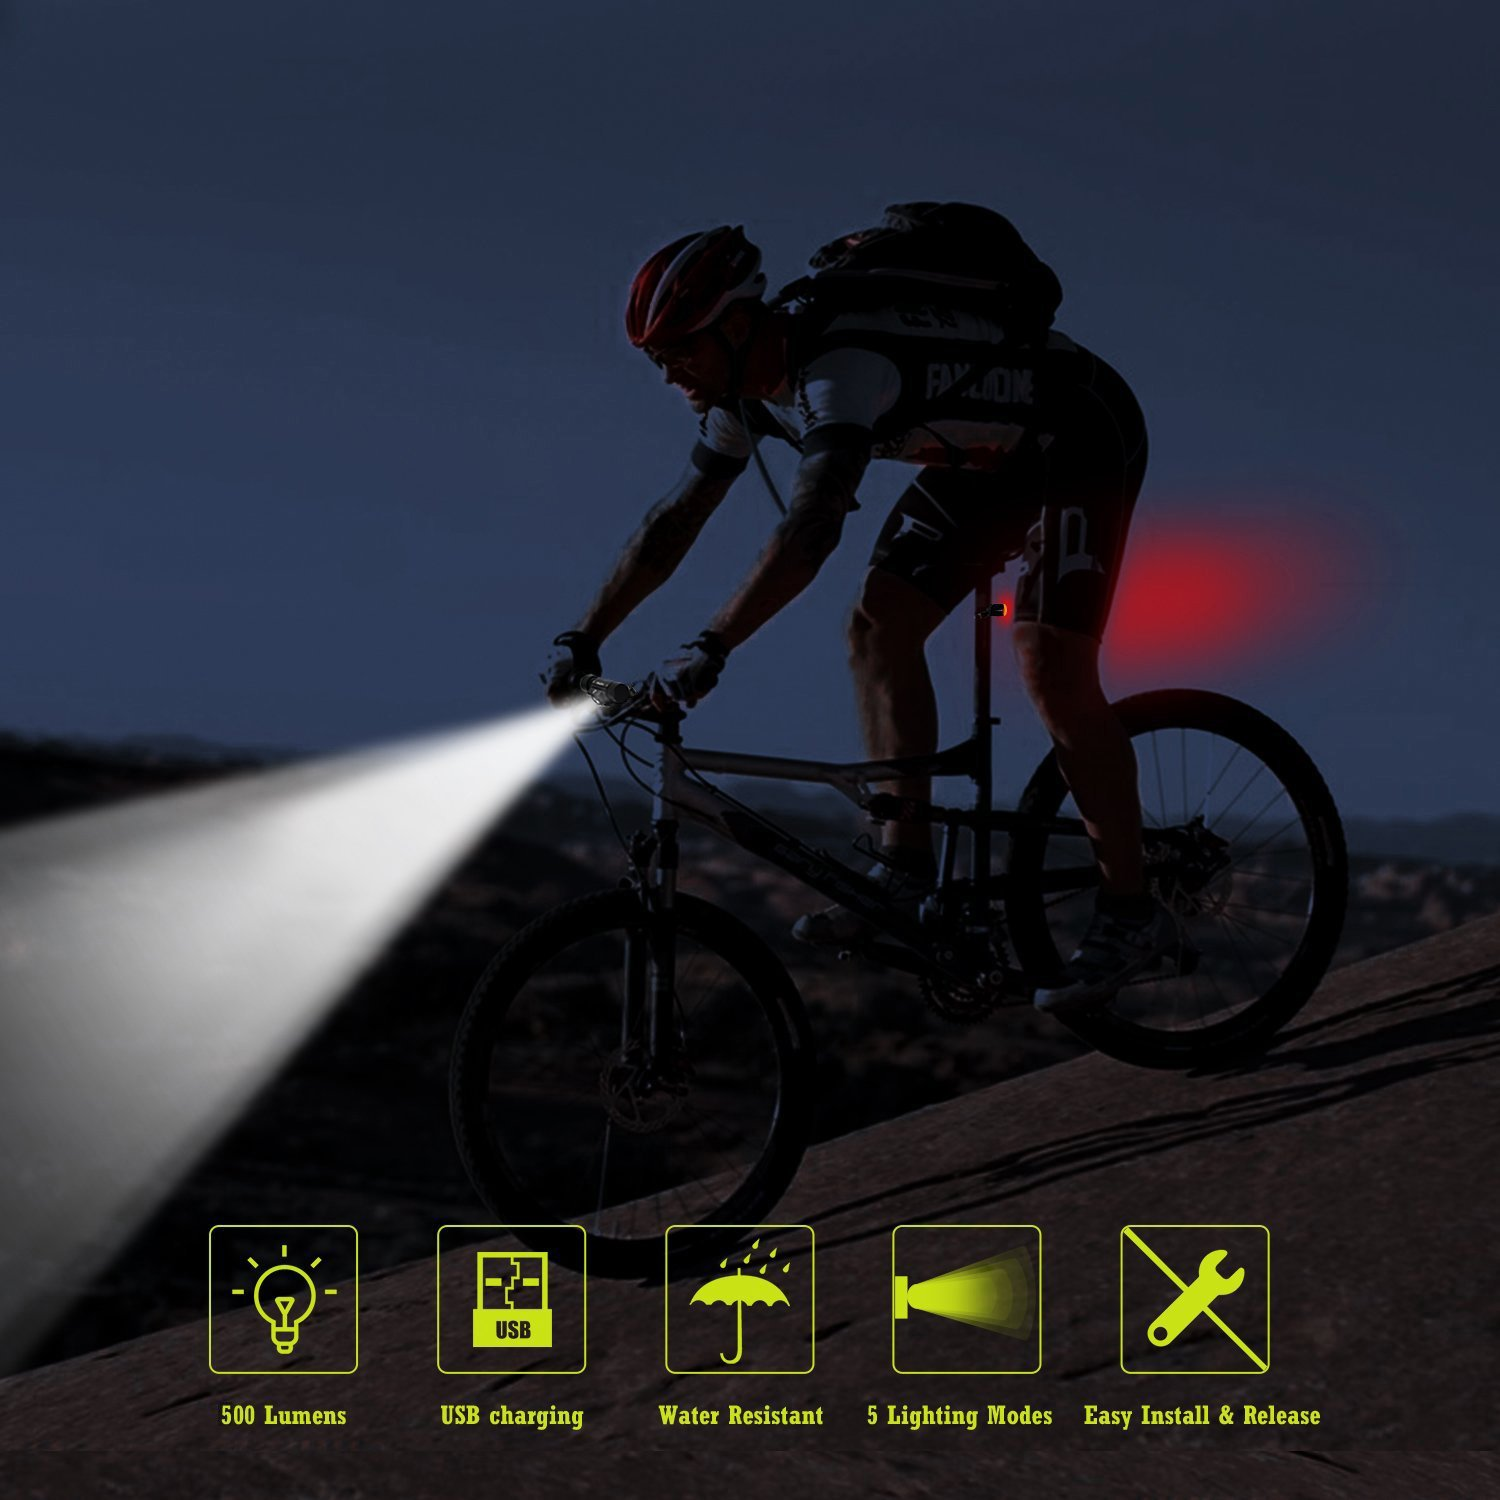 AUOPRO LED Bike Light Set - Bicycle Headlight USB Rechargeable and Red Taillight, Front and Back Rear Lights, Water Resistant Easy to Install for Road Cycling, Commuting by AUOPRO (Image #6)